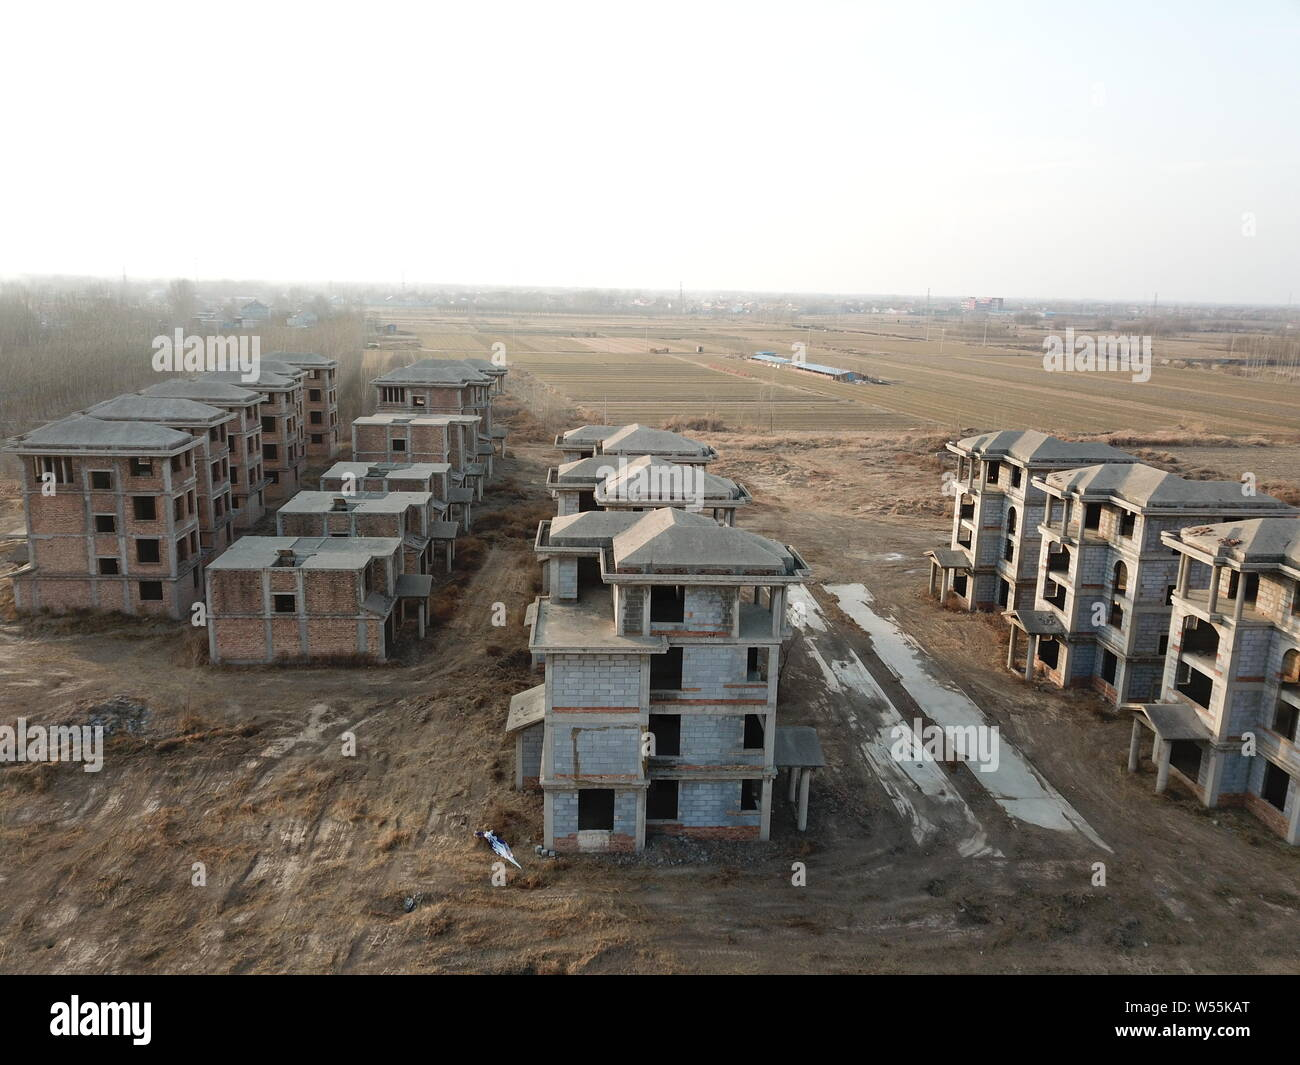 A view of a ghost town with unfinished complex including a boat-shaped building in Yangxin county, Binzhou city, east China's Shandong province, 17 Fe Stock Photo